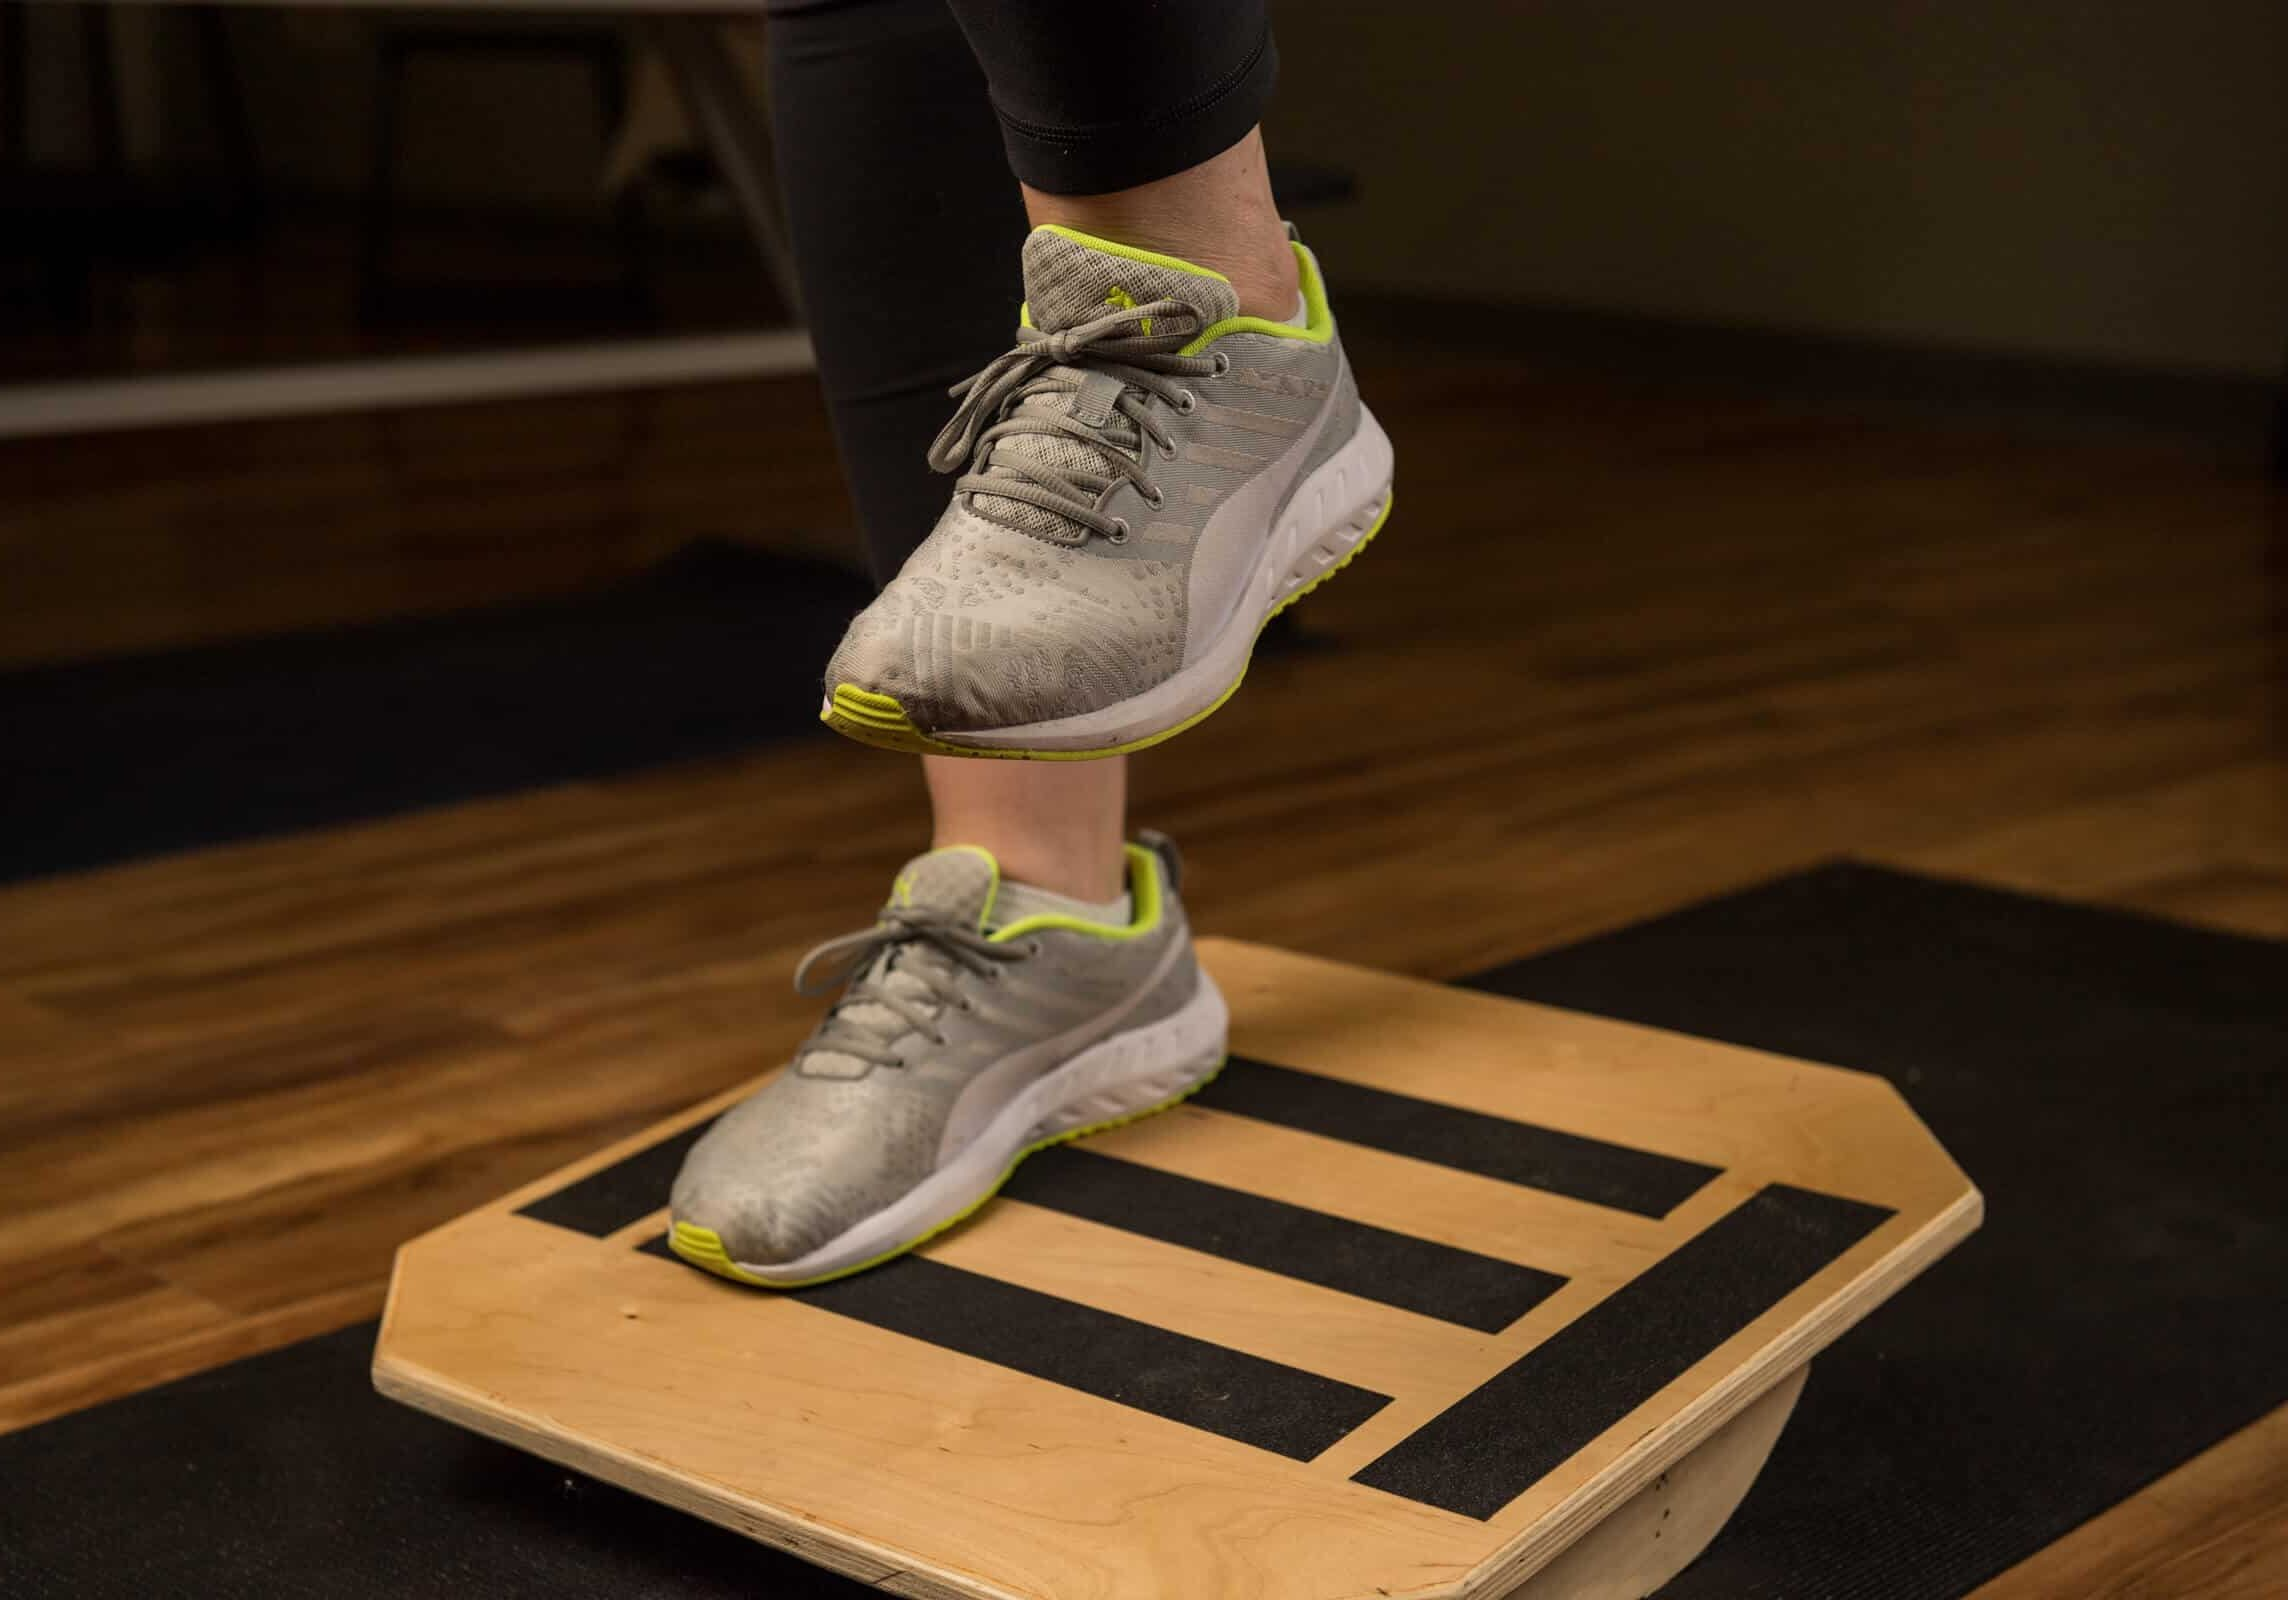 balancing training on one foot while standing on a platform